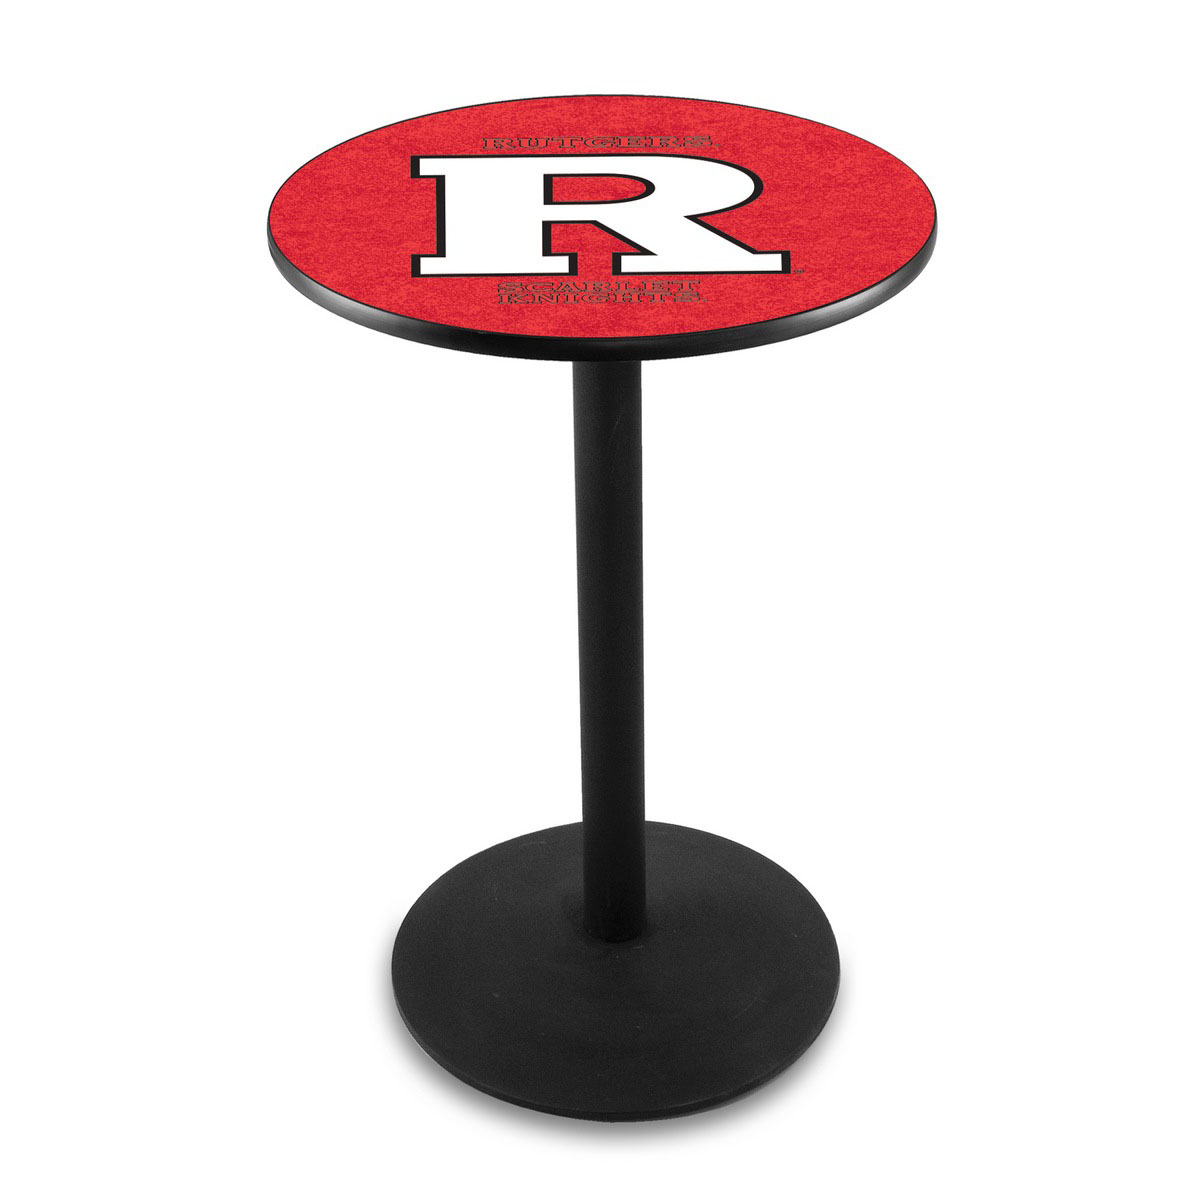 Select Rutgers-Logo-Pub-Bar-Table-Round-Stand Product Picture 1304